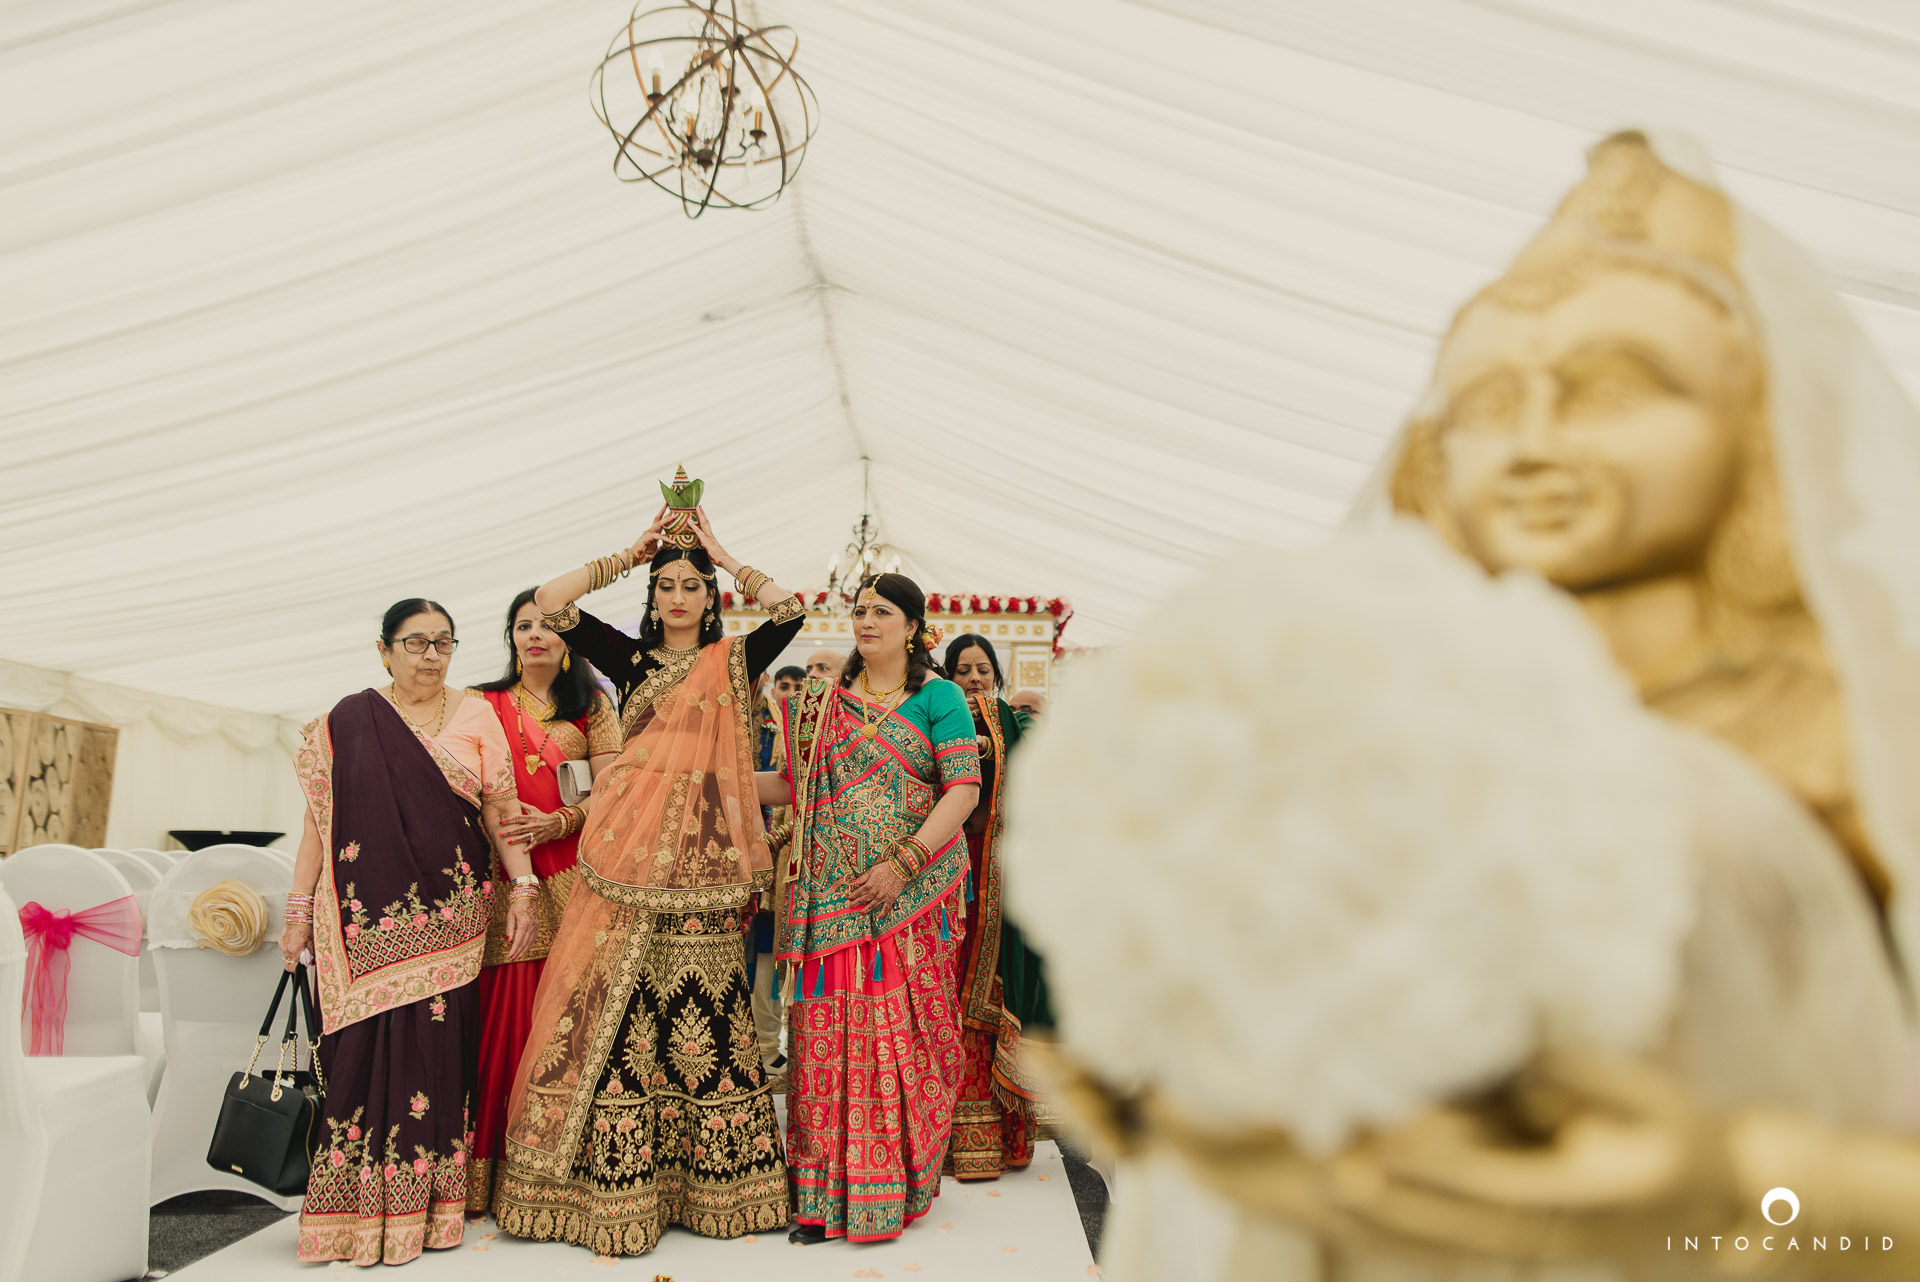 London_Wedding_Photographer_Intocandid_Photography_Ketan & Manasvi_30.JPG